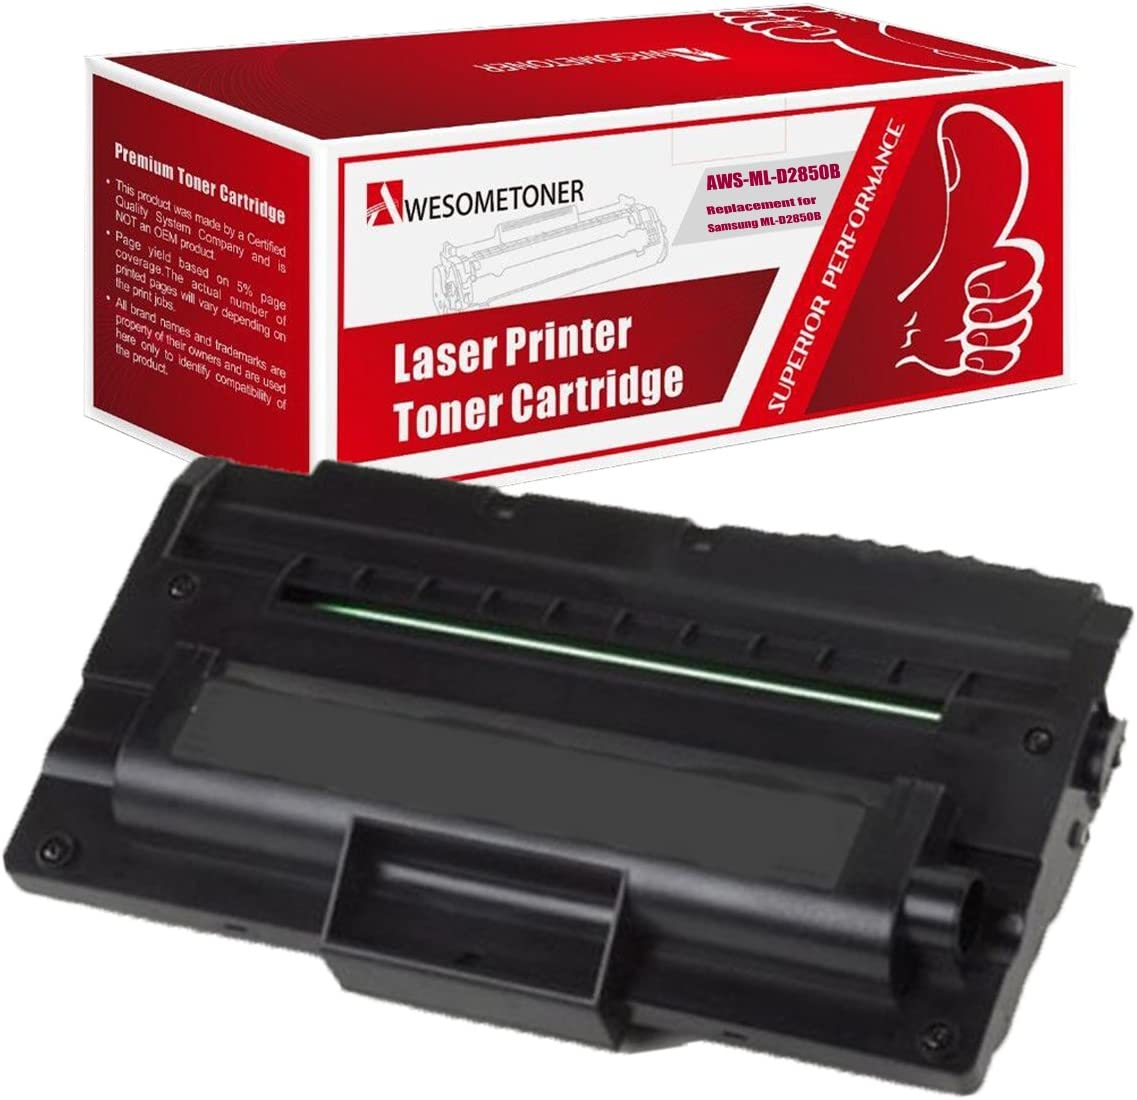 Awesometoner Compatible Toner Cartridge Replacement for Samsung ML-D2850B use with ML-2851ND Black, 1-Pack